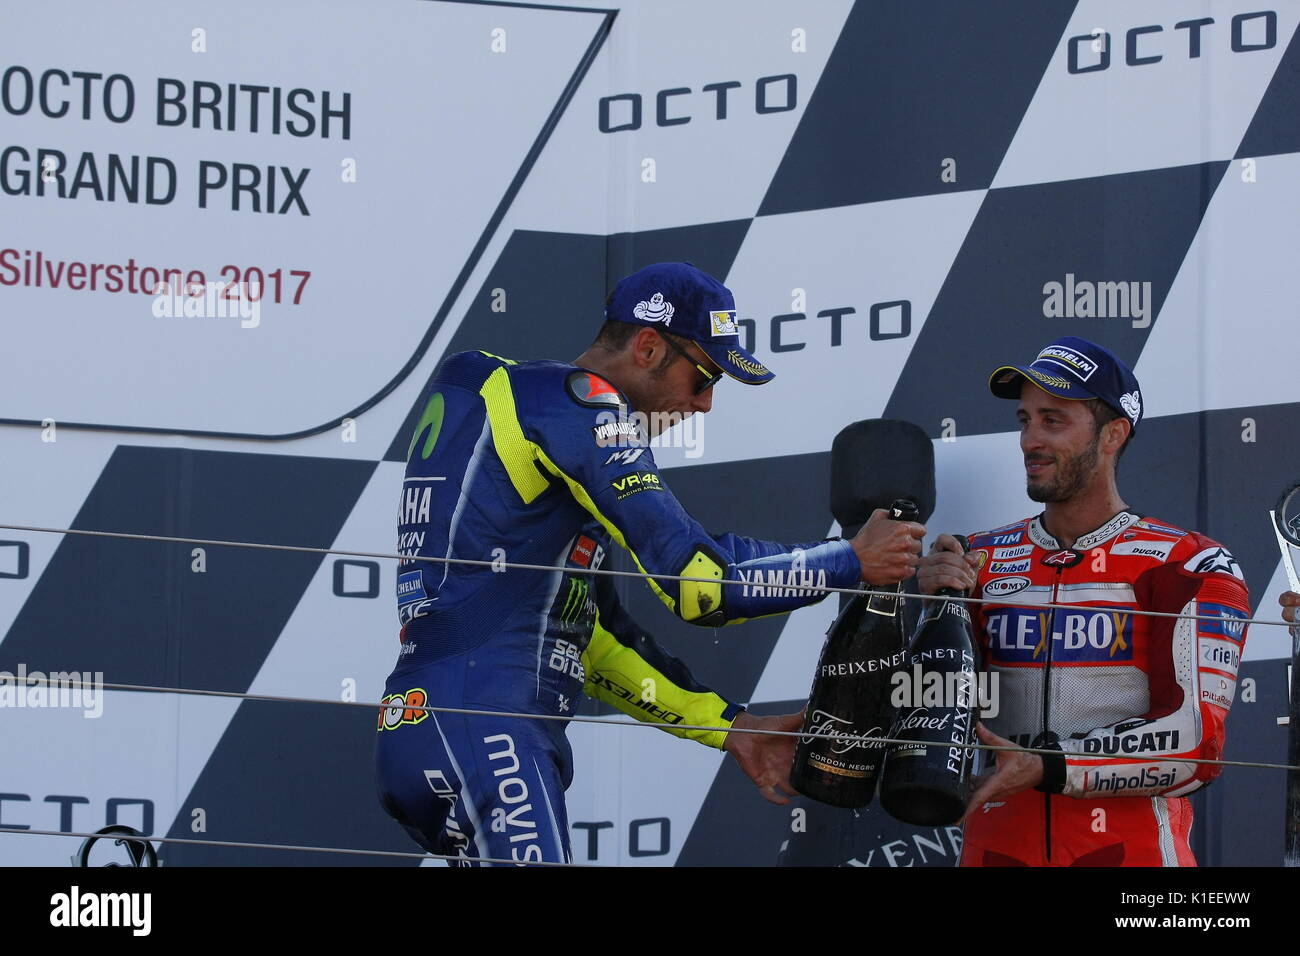 Silverstone, UK. 27th Aug, 2017.  Cheers! Rossi and Dovizioso toast each other's success after the OCTO British MotoGP Credit: Motofoto/Alamy Live News - Stock Image